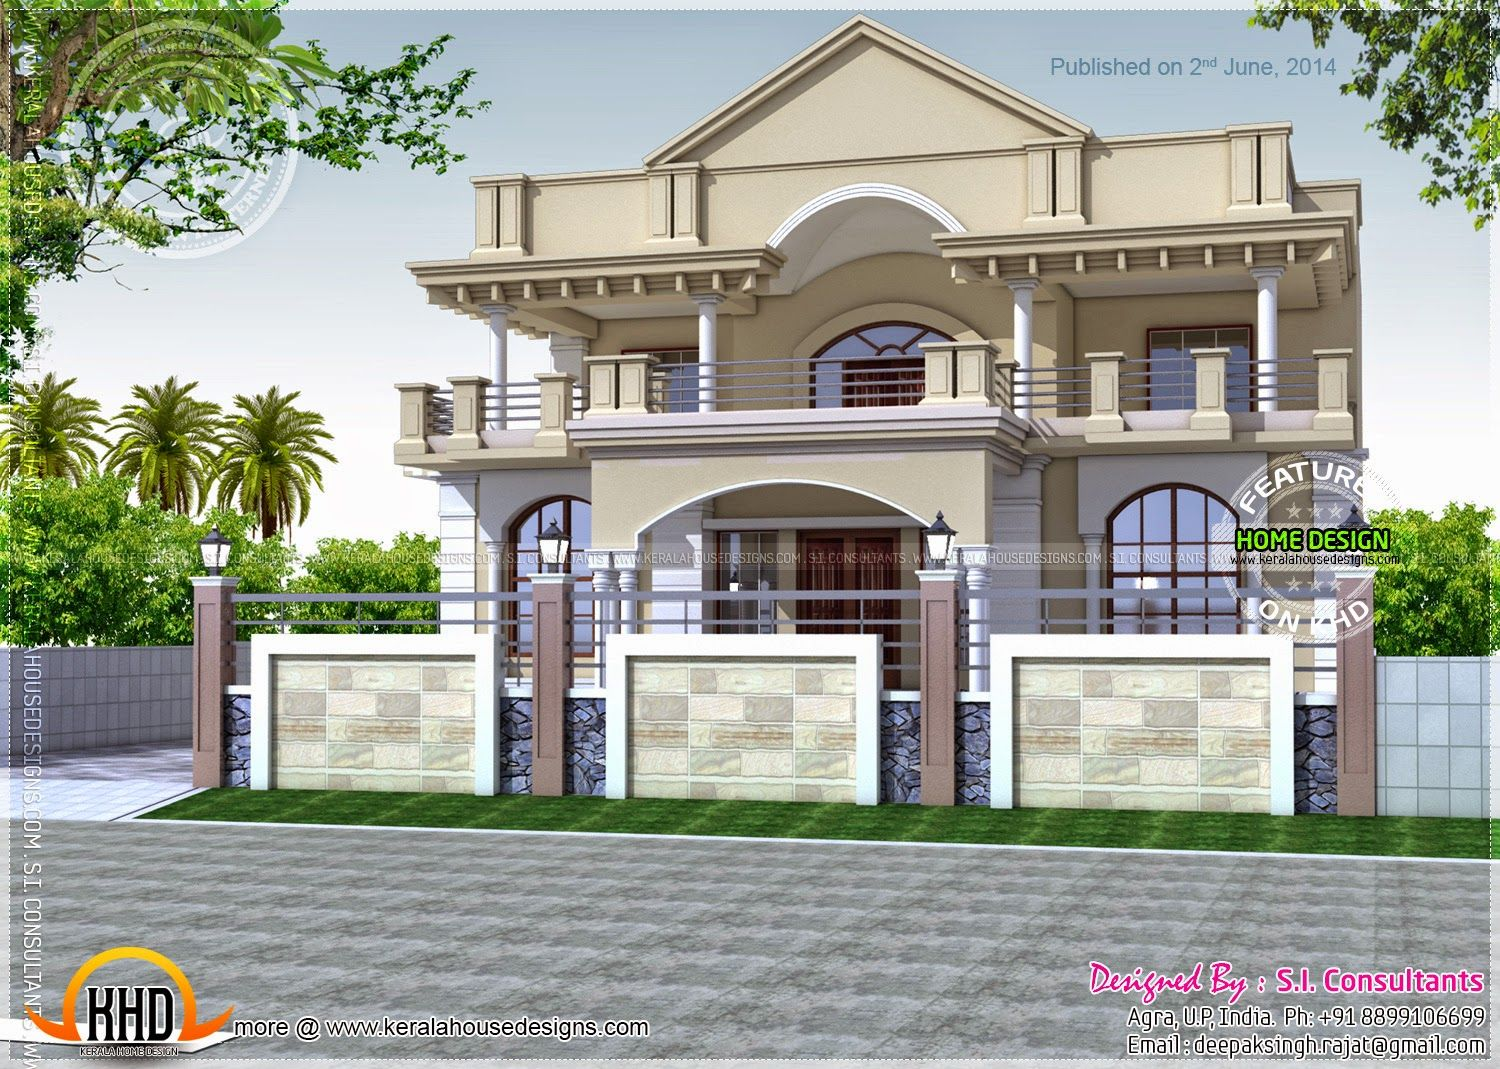 North Indian Exterior House Indian Home Design Kerala House Design Indian House Plans